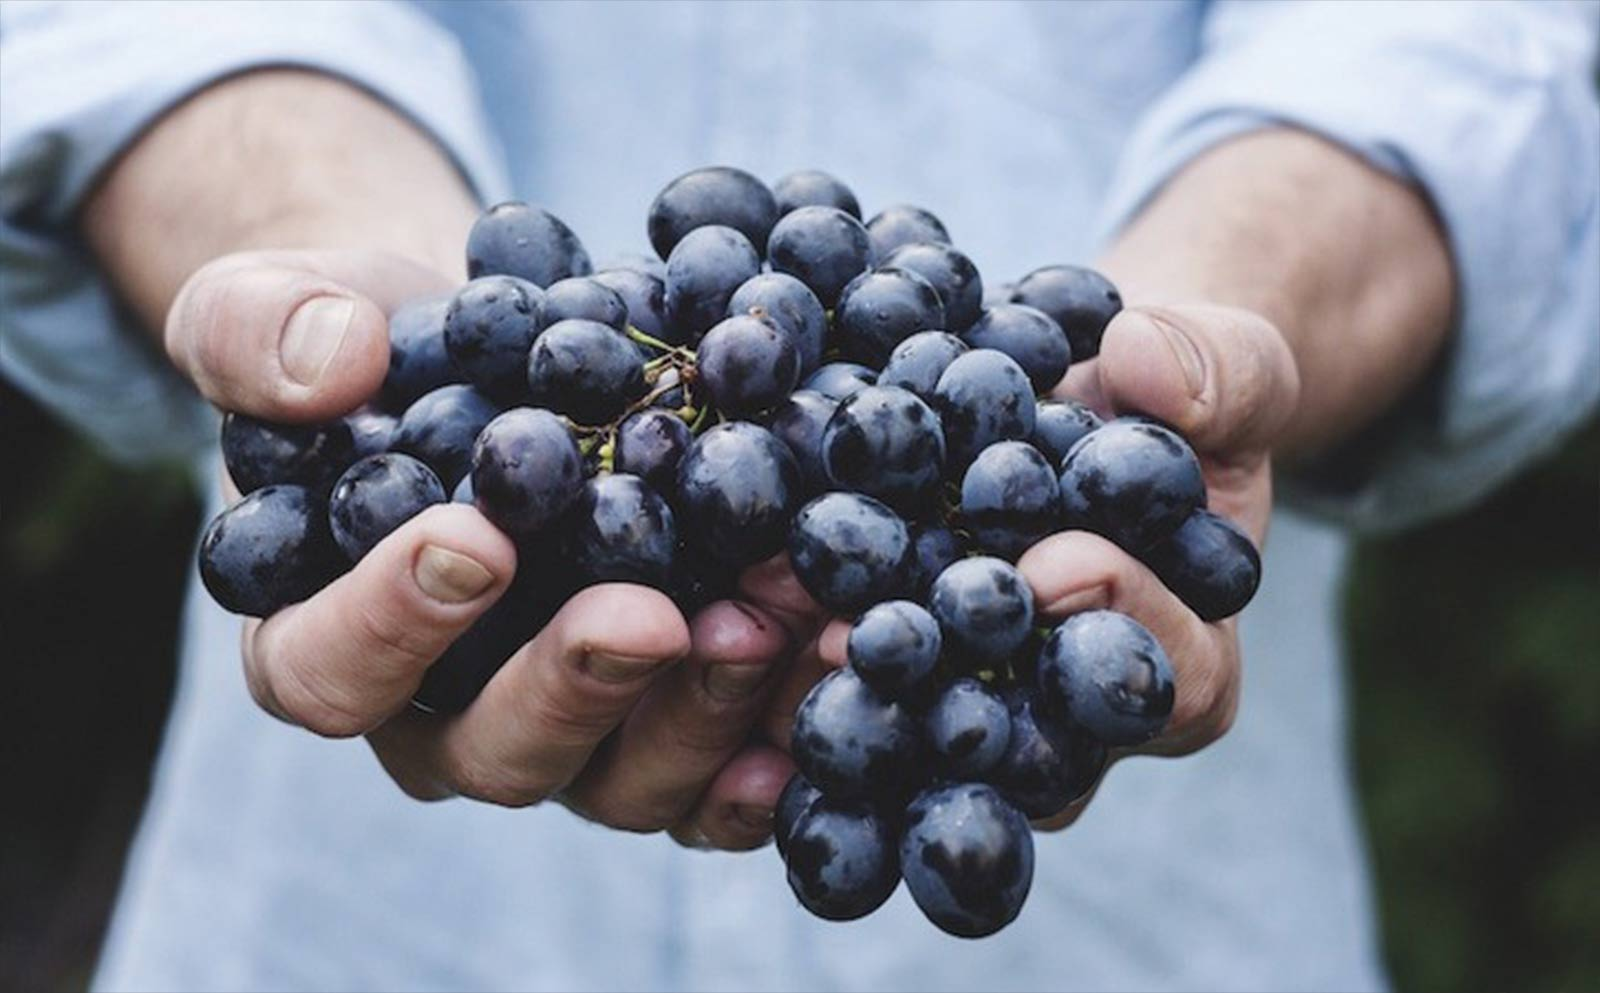 Person Holding Bunch of Grapes